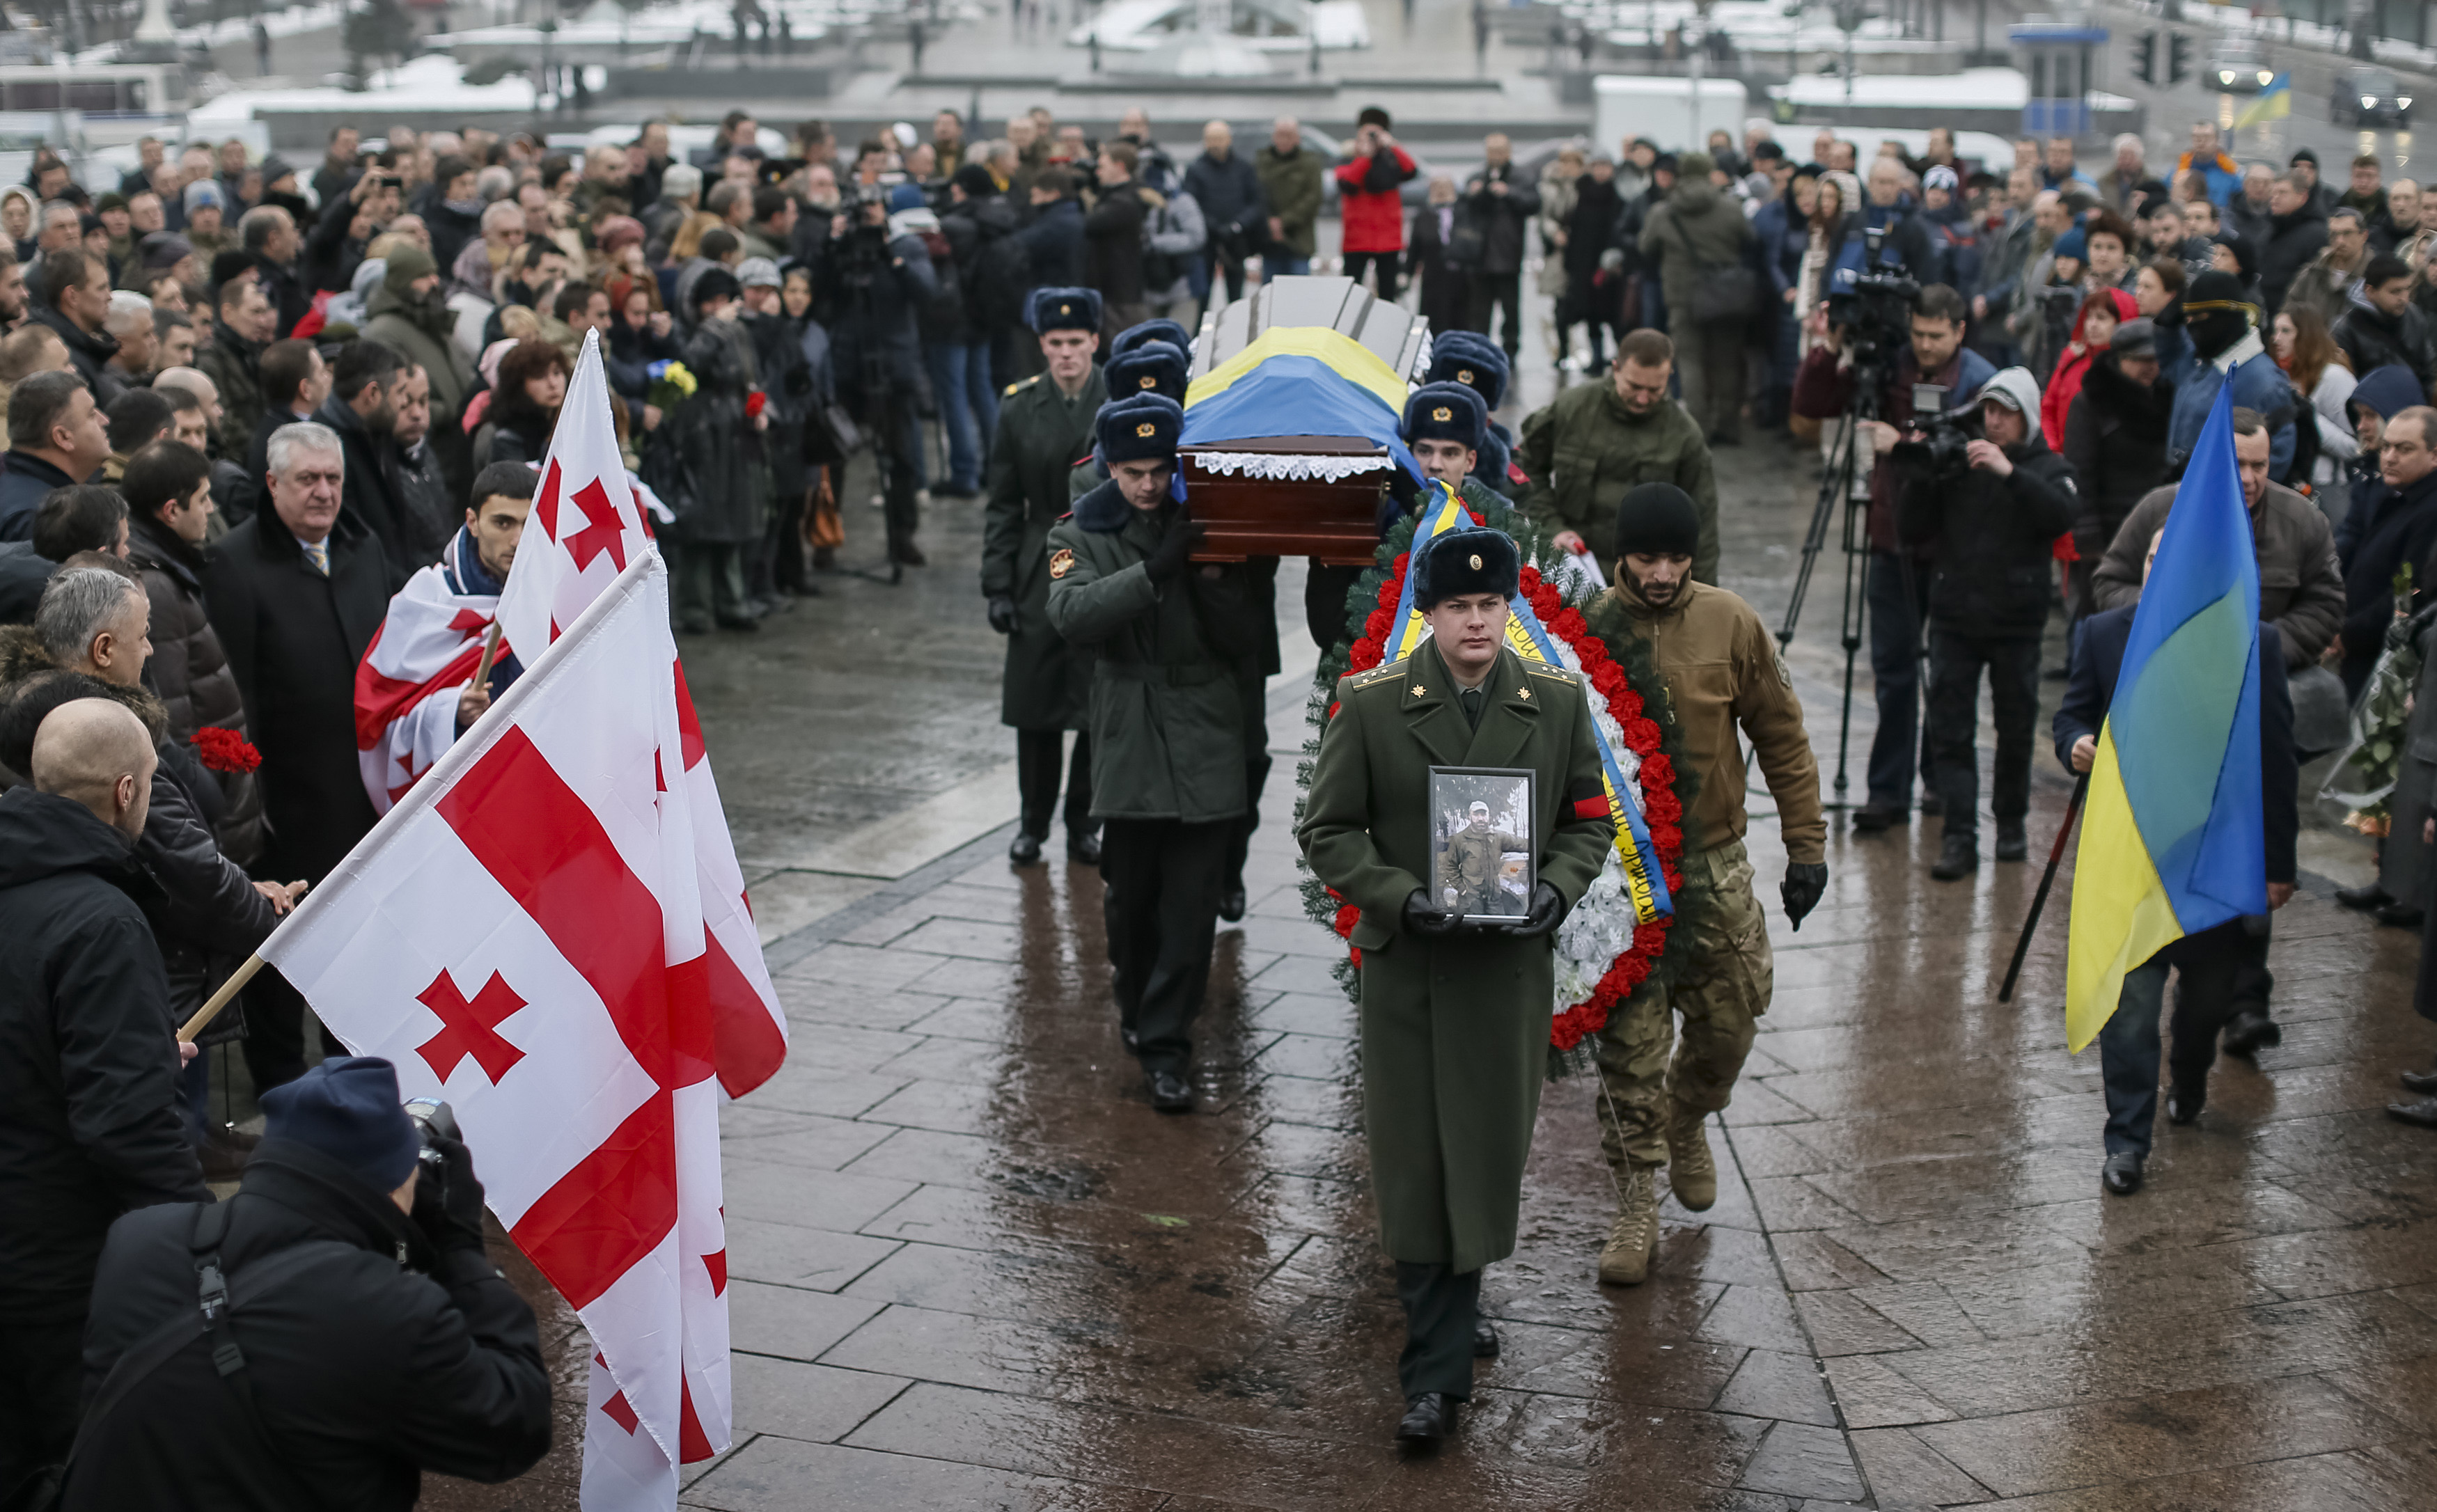 US Should Provide Arms, Military Aid to Ukraine, Eight Ex-Officials Say